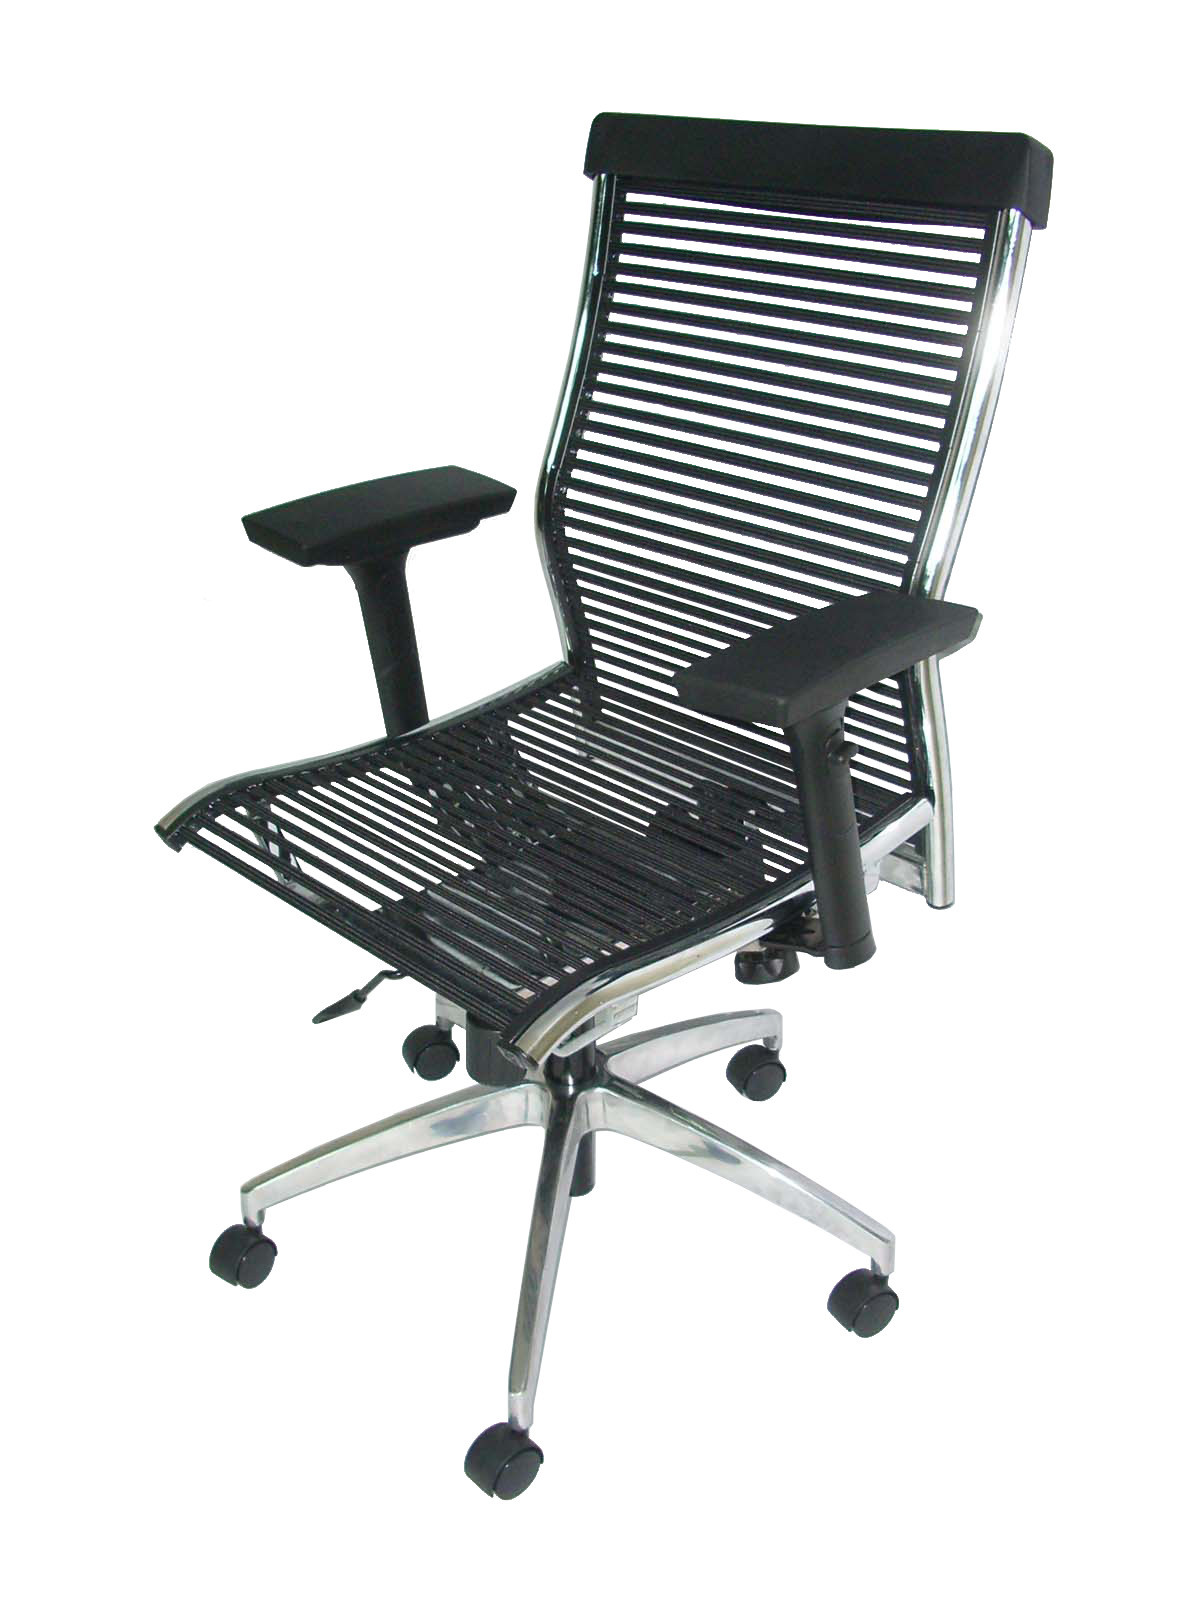 Best ideas about Bungee Office Chair . Save or Pin Bungee chair Now.